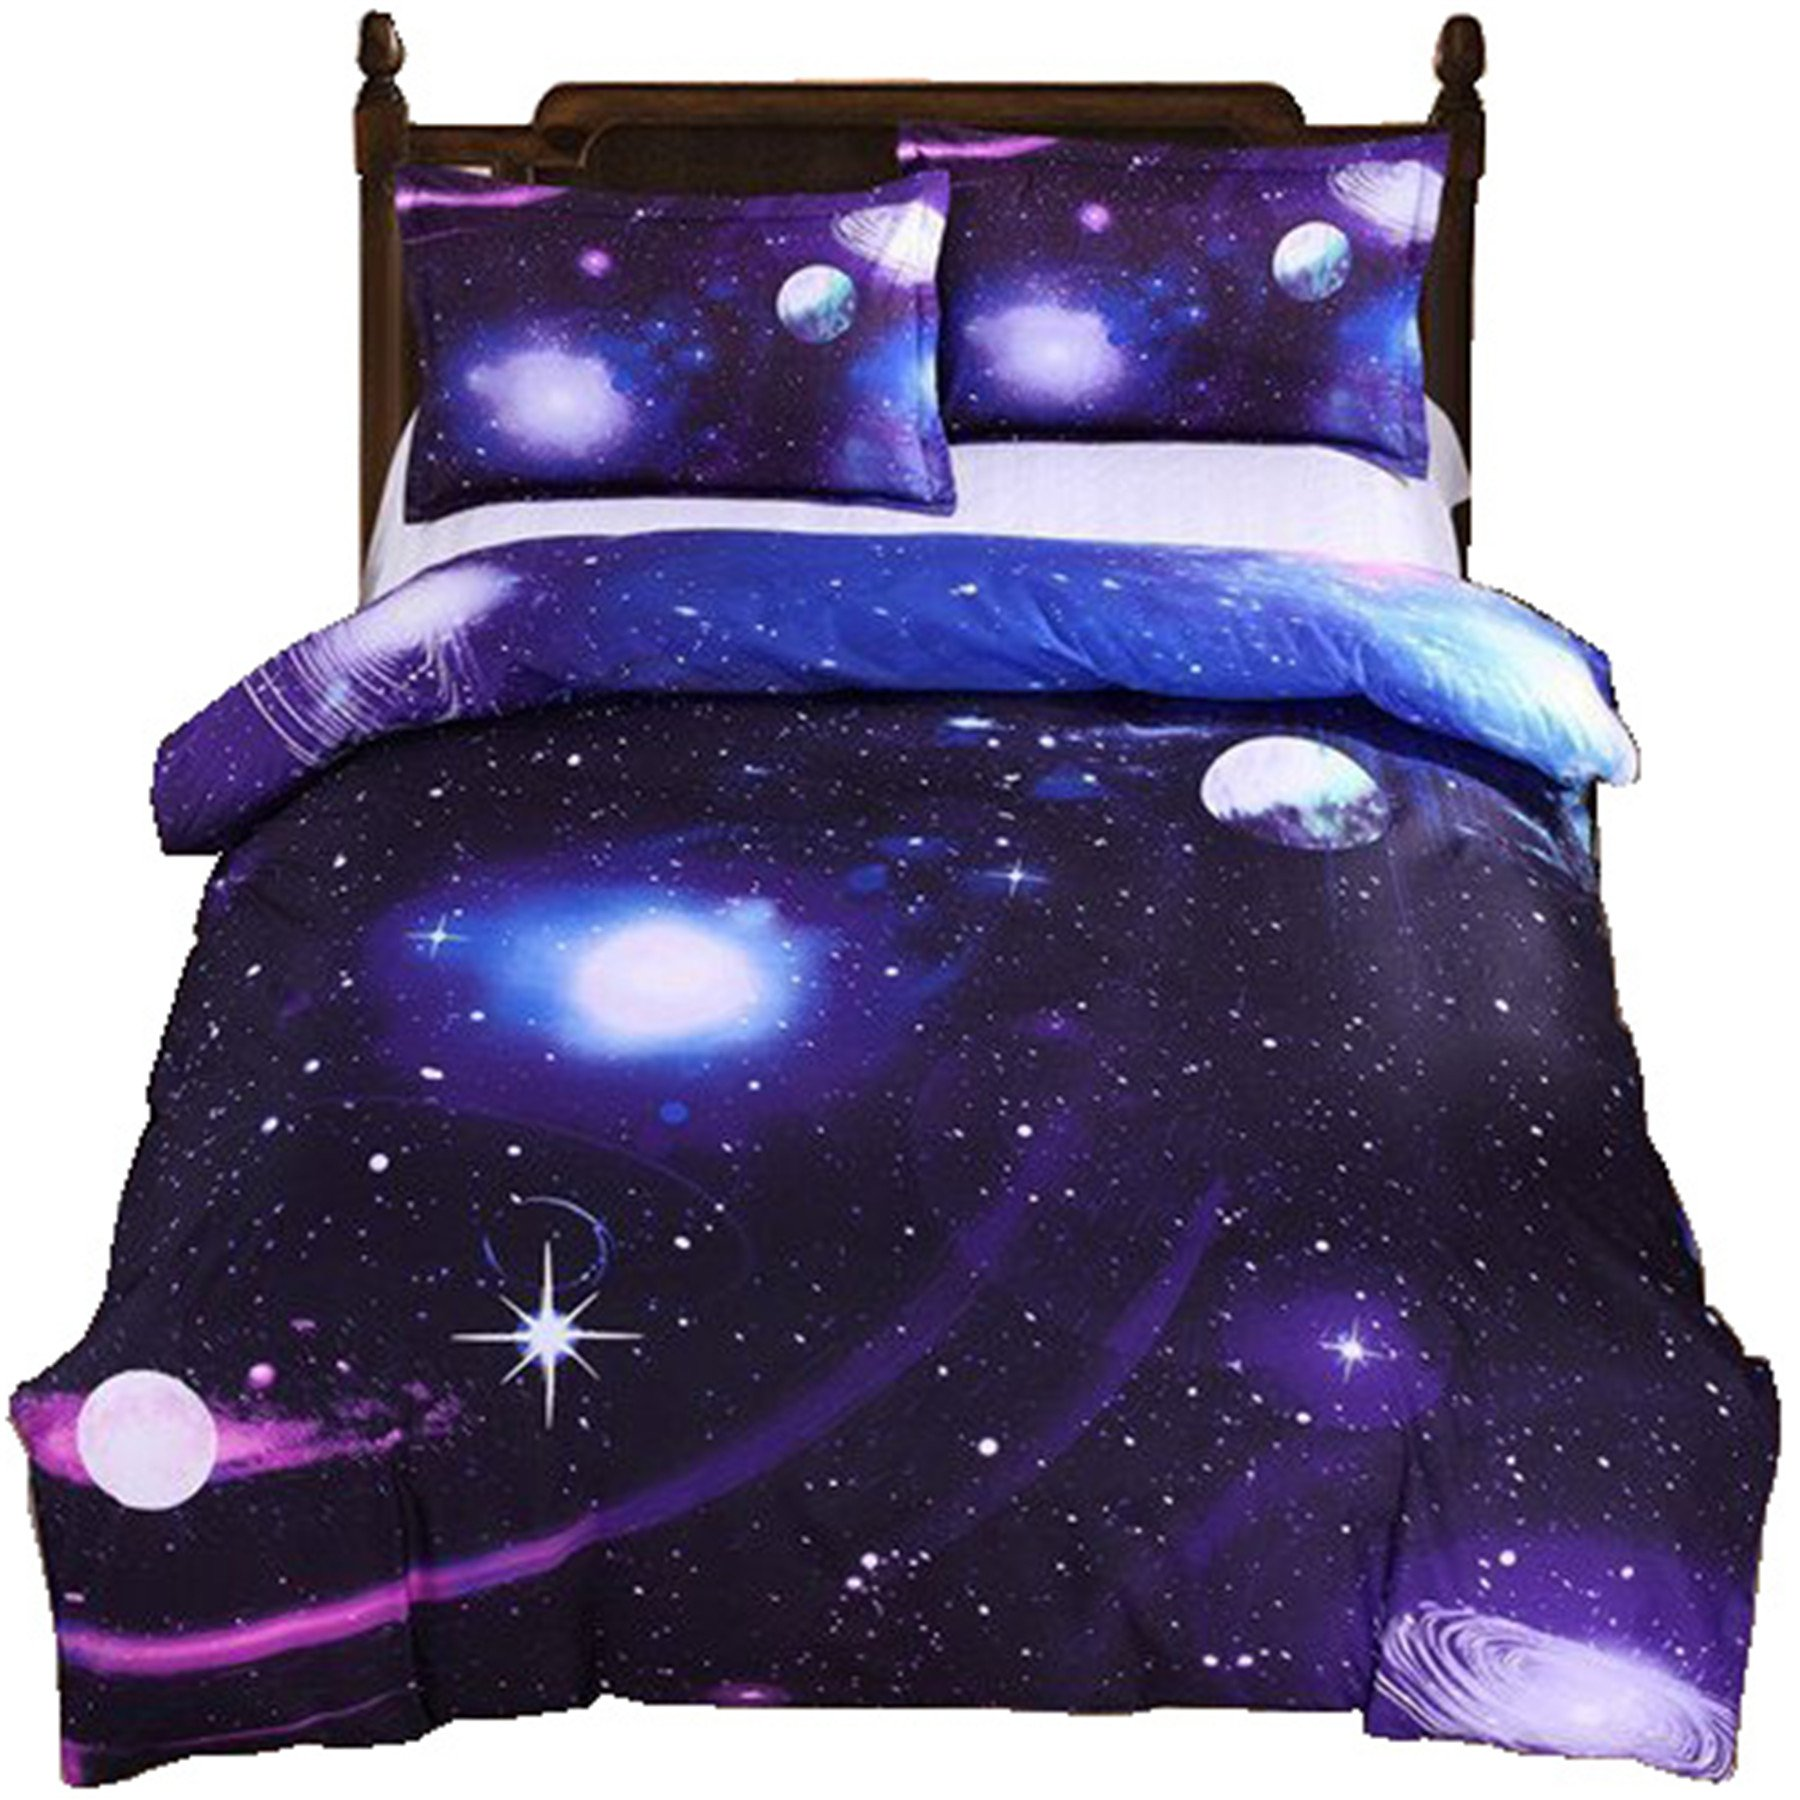 A Nice Night 2 PCS Galaxy Bedding Sets Duvet Cover Sets Kids Bedding for Boys and Girls Teens, Twin